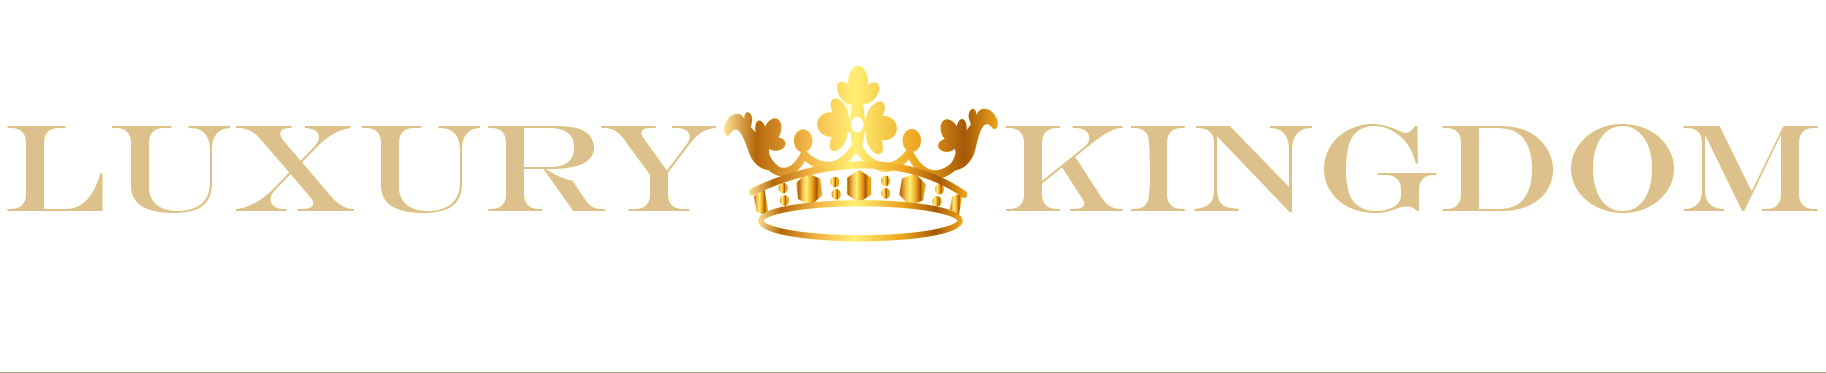 Luxury Kingdom | Health, Beauty & Food Store | NSW, Australia